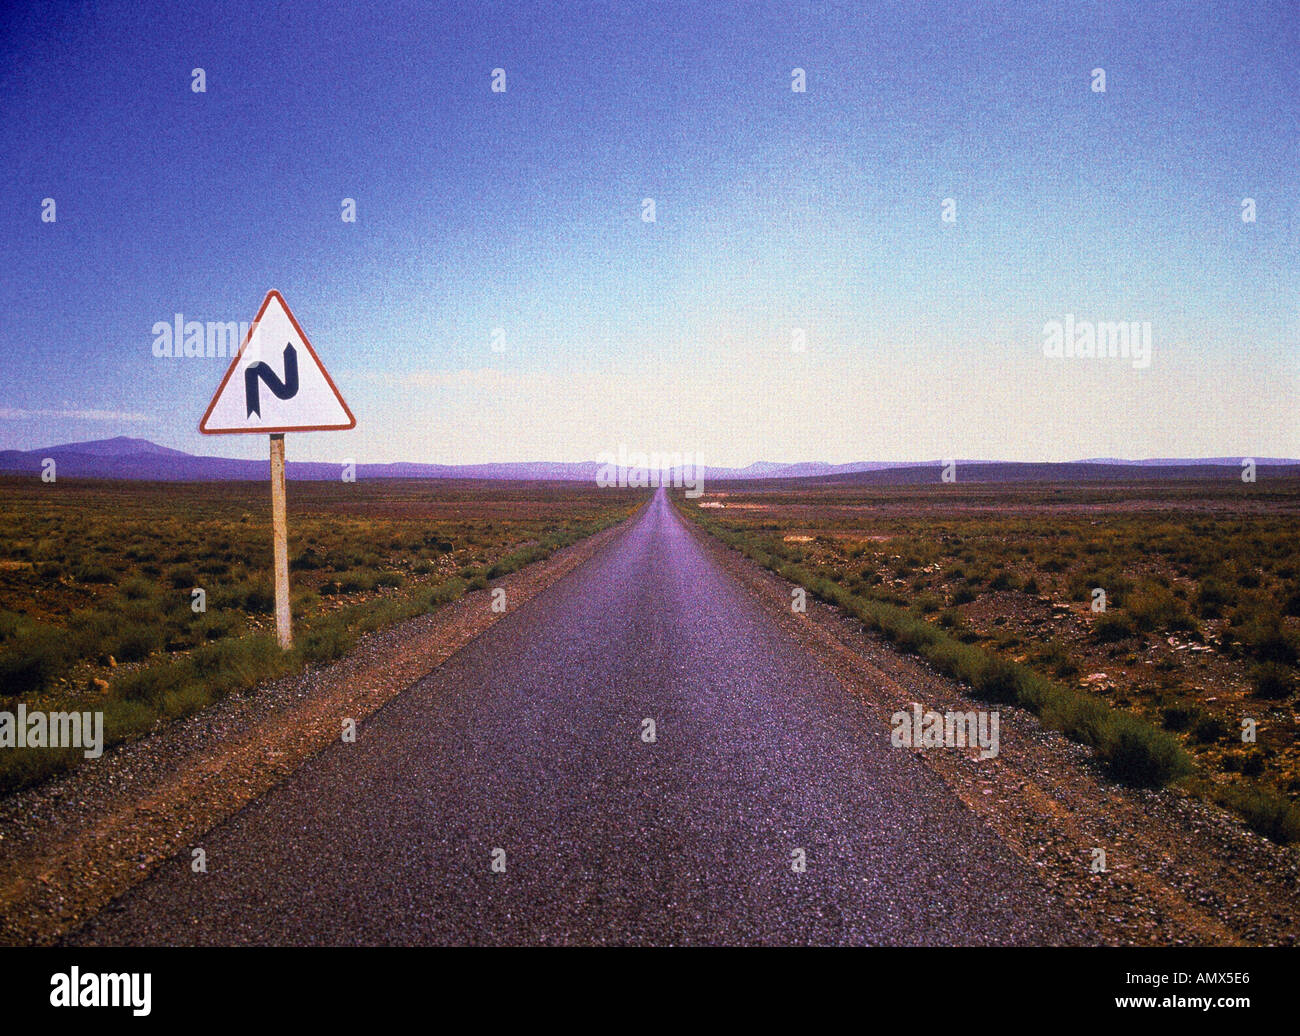 Straight Road, Road Sign - Stock Image